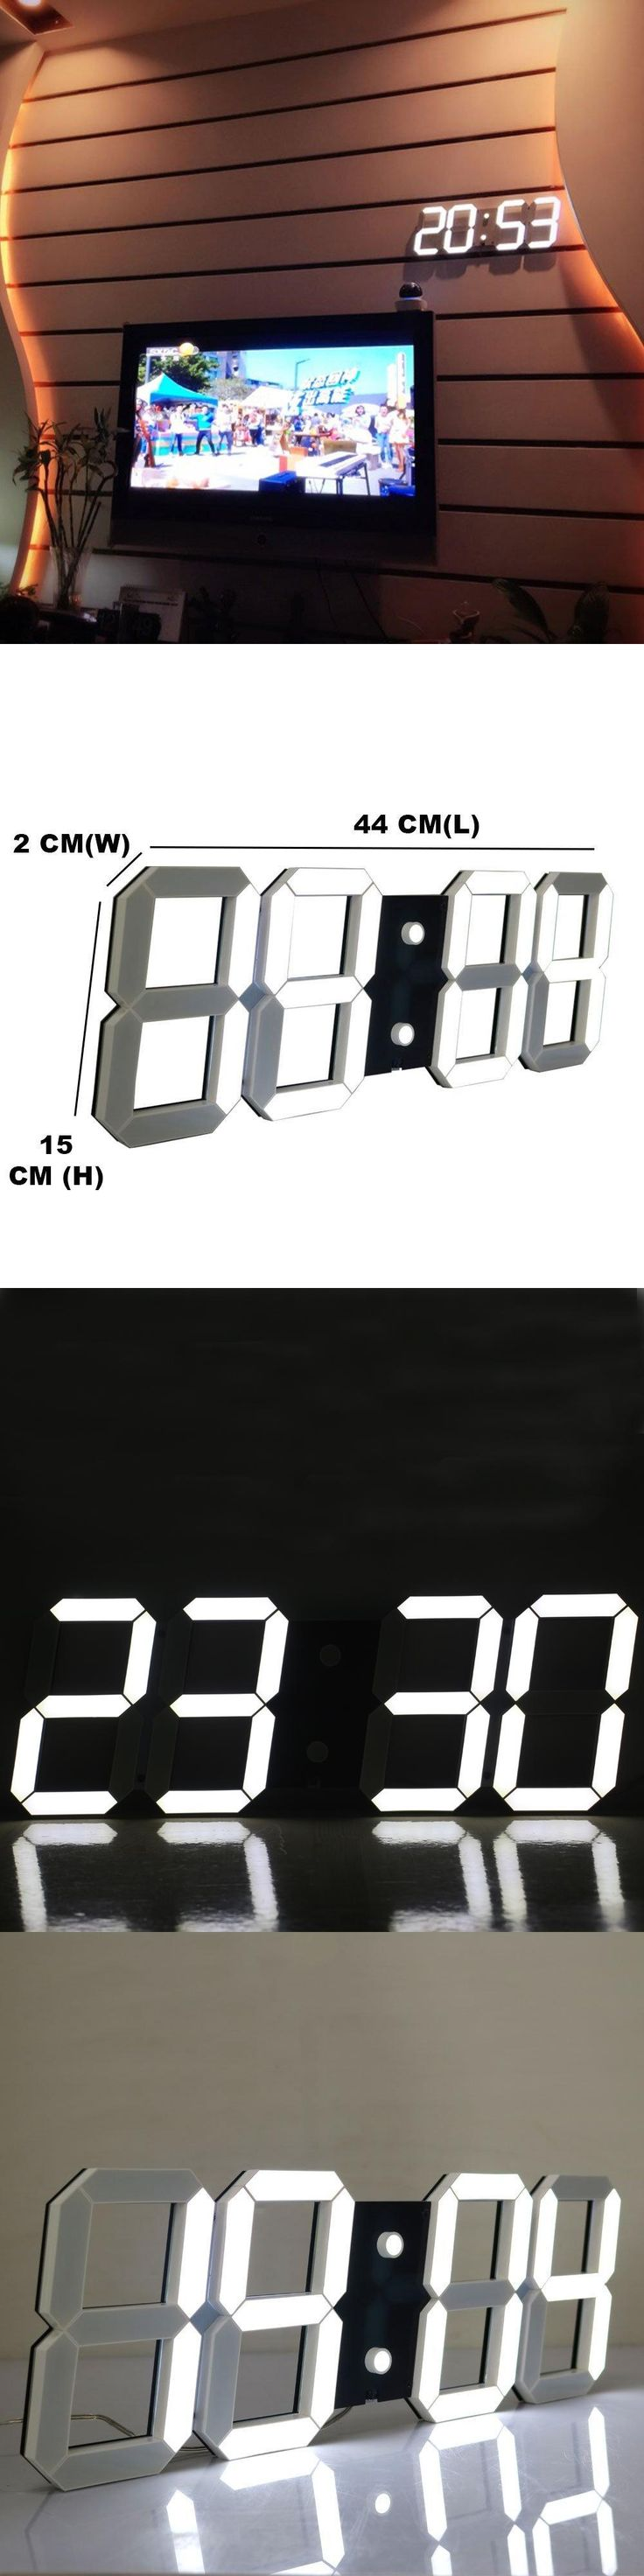 Best 25 countdown clock timer ideas on pinterest stopwatch led digital wall clock large led display remote control countdown count up timer with calendar date amipublicfo Choice Image